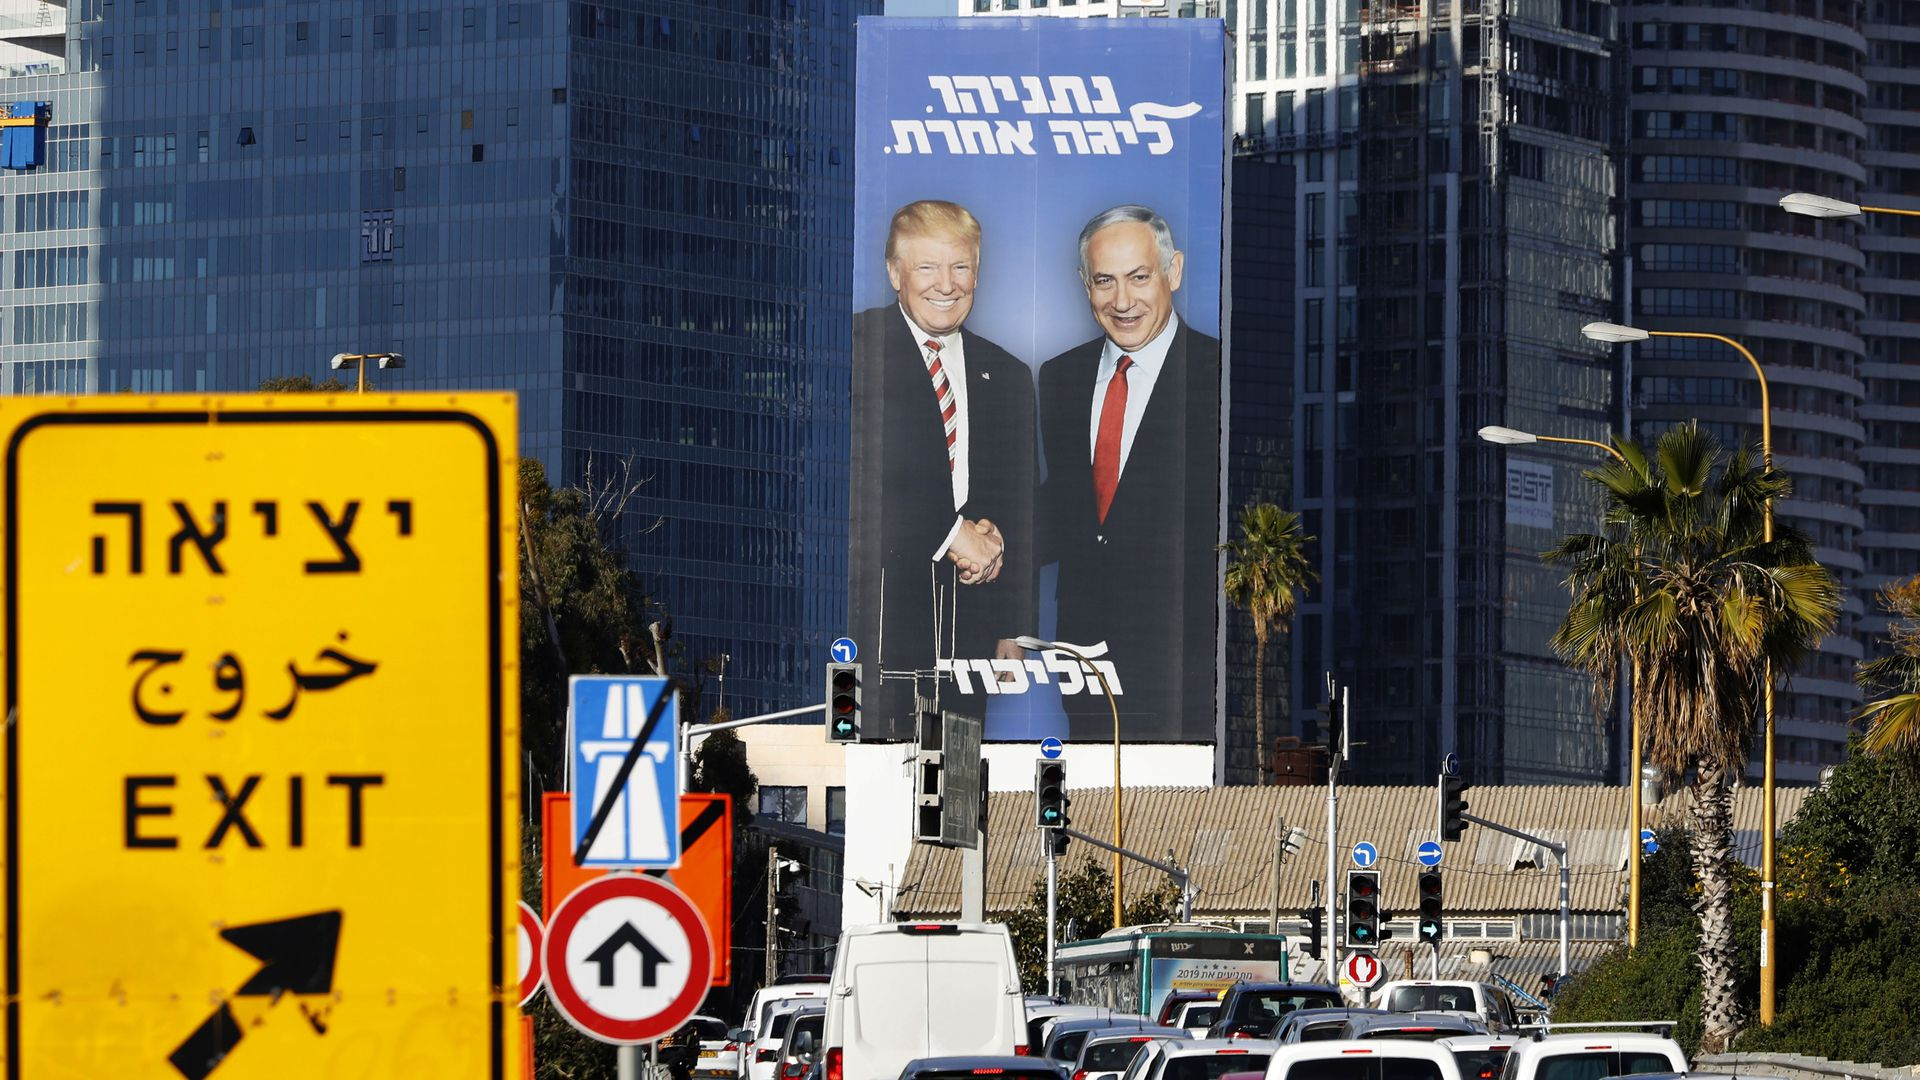 Billboard of Netanyahu and Trump in Israel